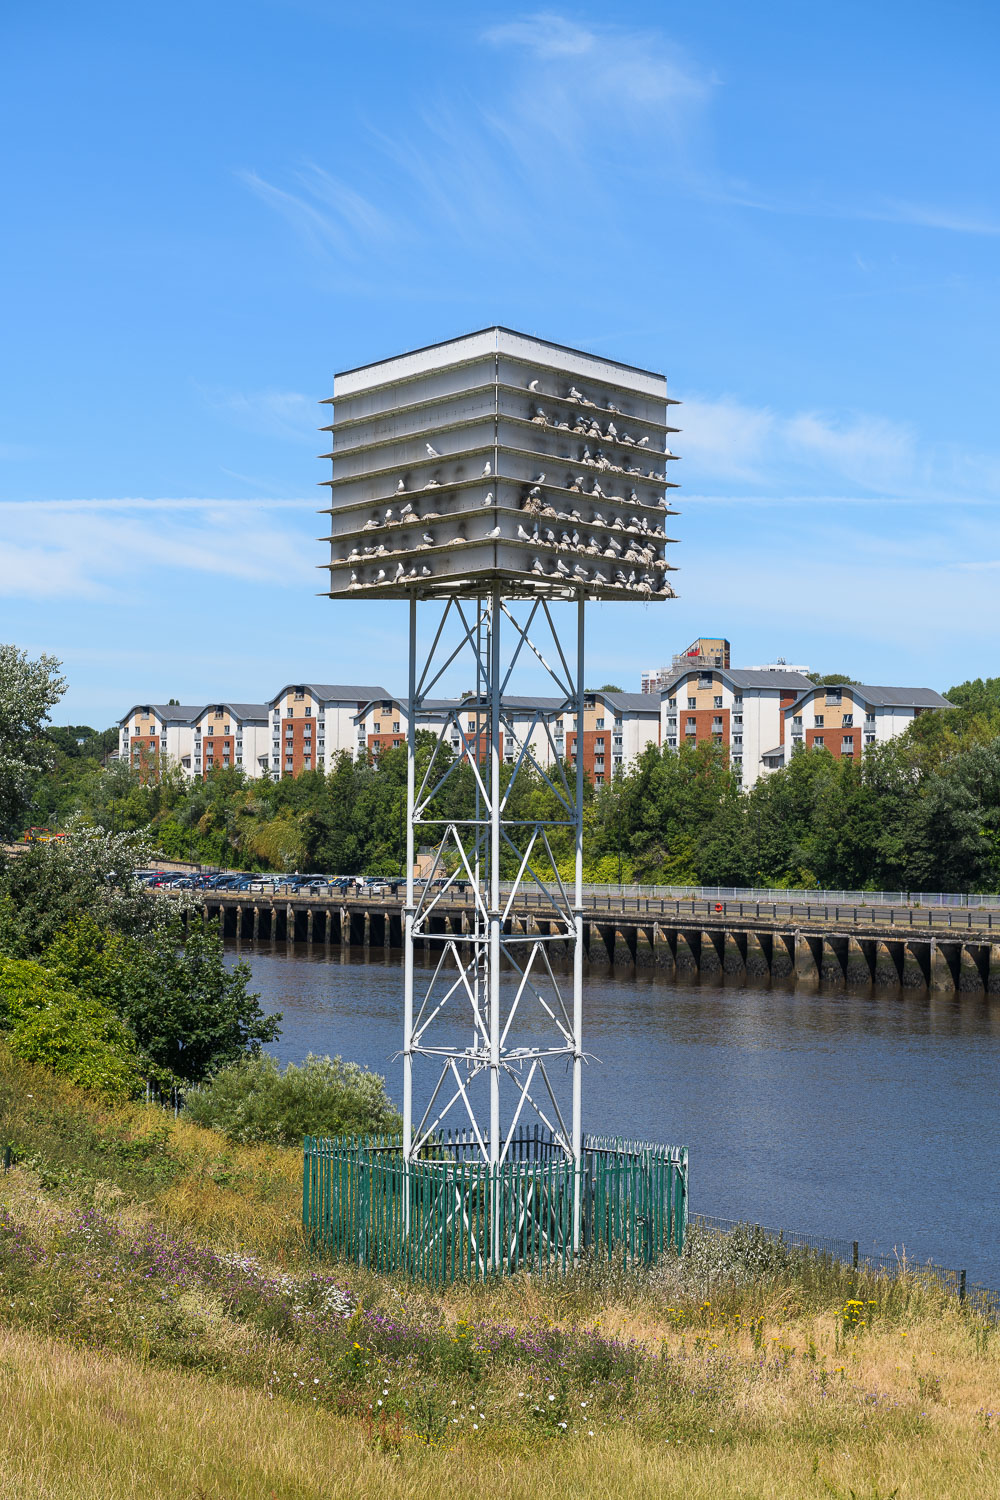 Kittiwake Tower